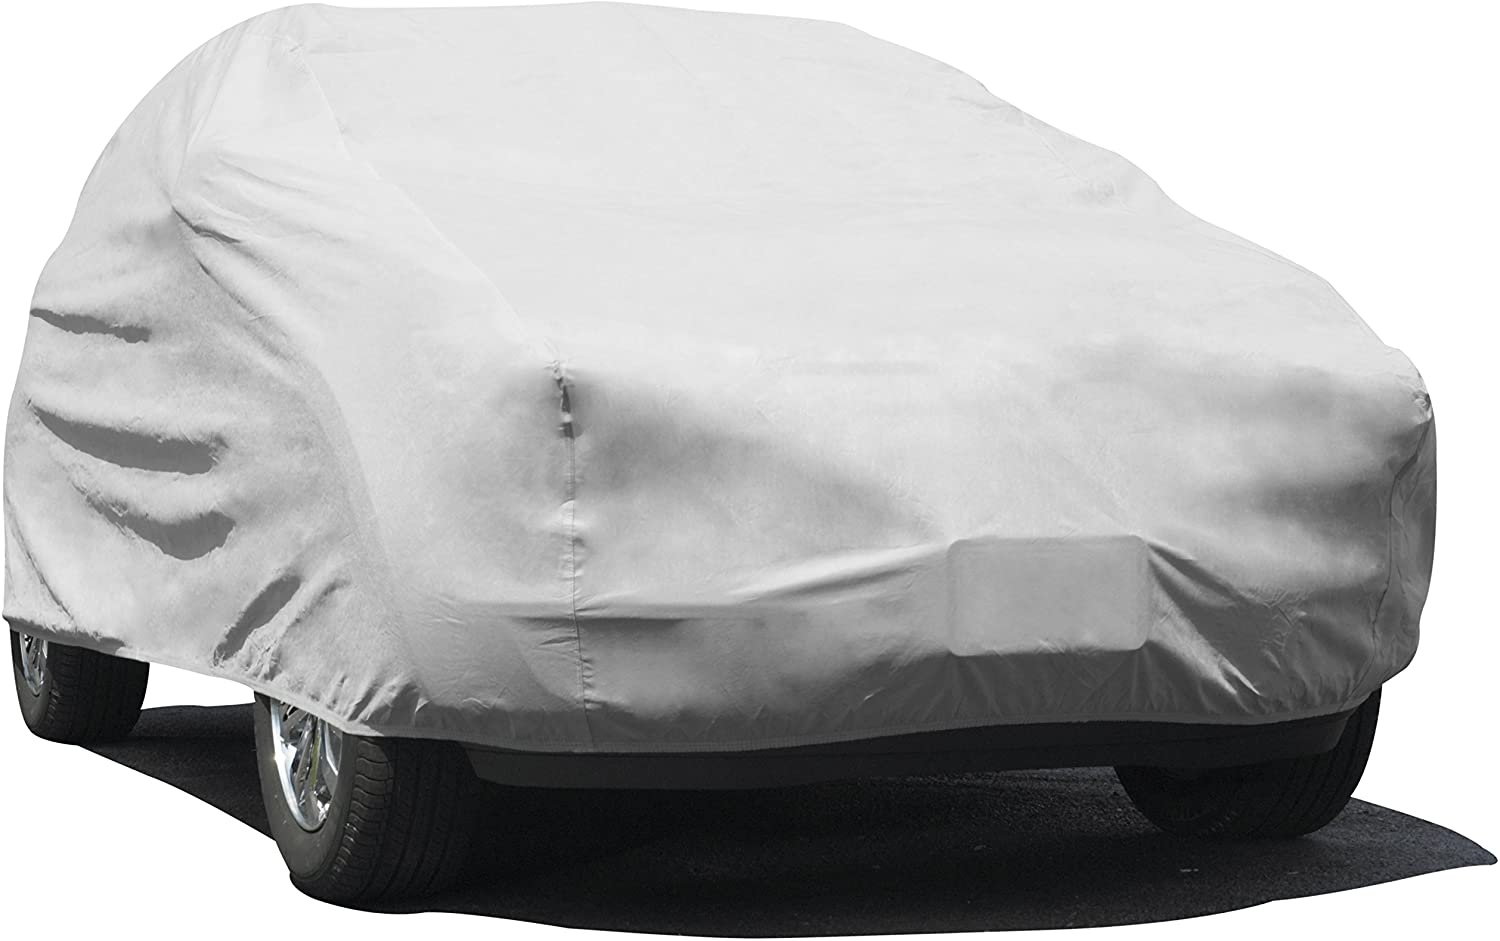 "Budge UB-0 Lite Indoor Dustproof UV Resistant Cover Fits Full Size SUVs up to 162"", Gray"